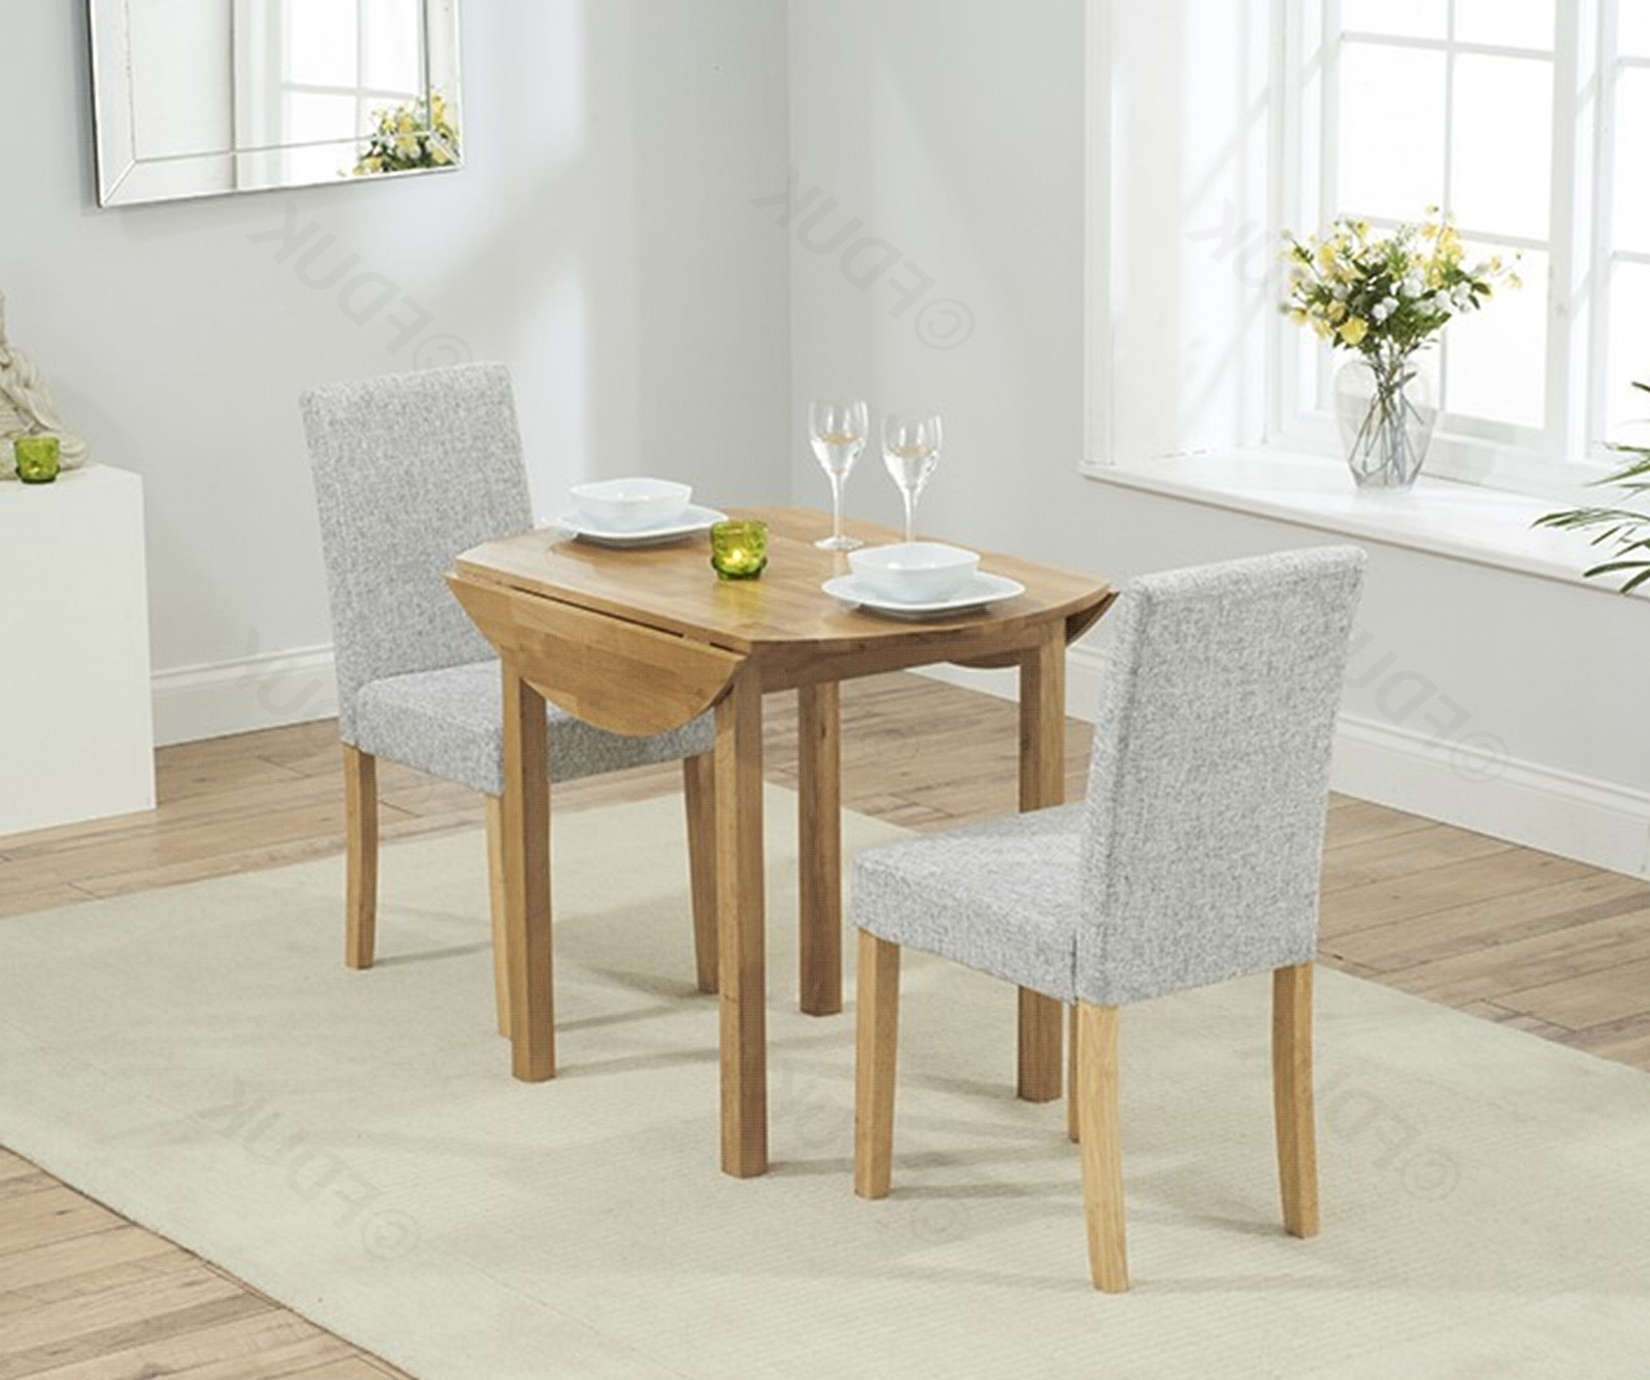 Promo Oak Round Extending Dining Table With 2 Within Round Extending Dining Tables Sets (Gallery 9 of 25)